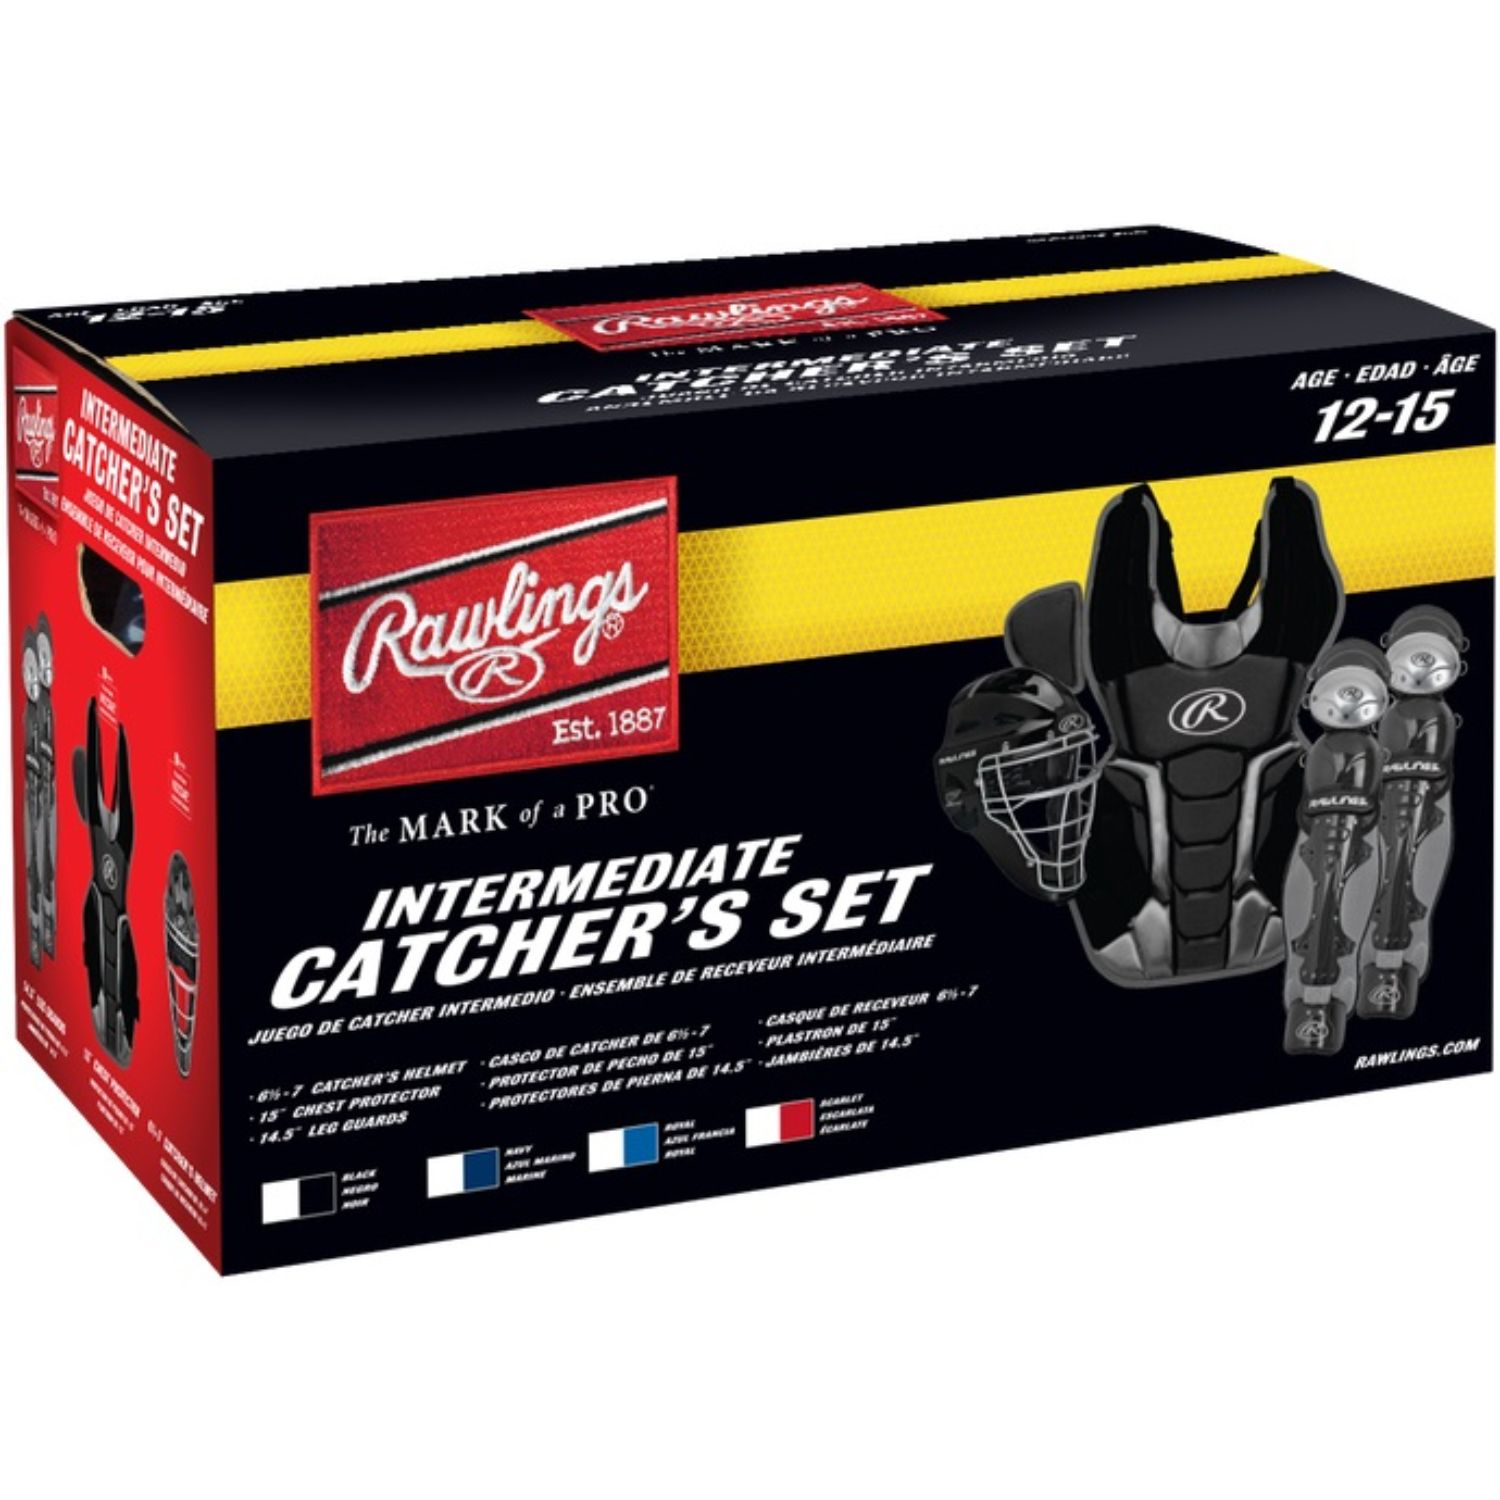 Rawlings Renegade Youth Catchers Set Ages 12-15 Years